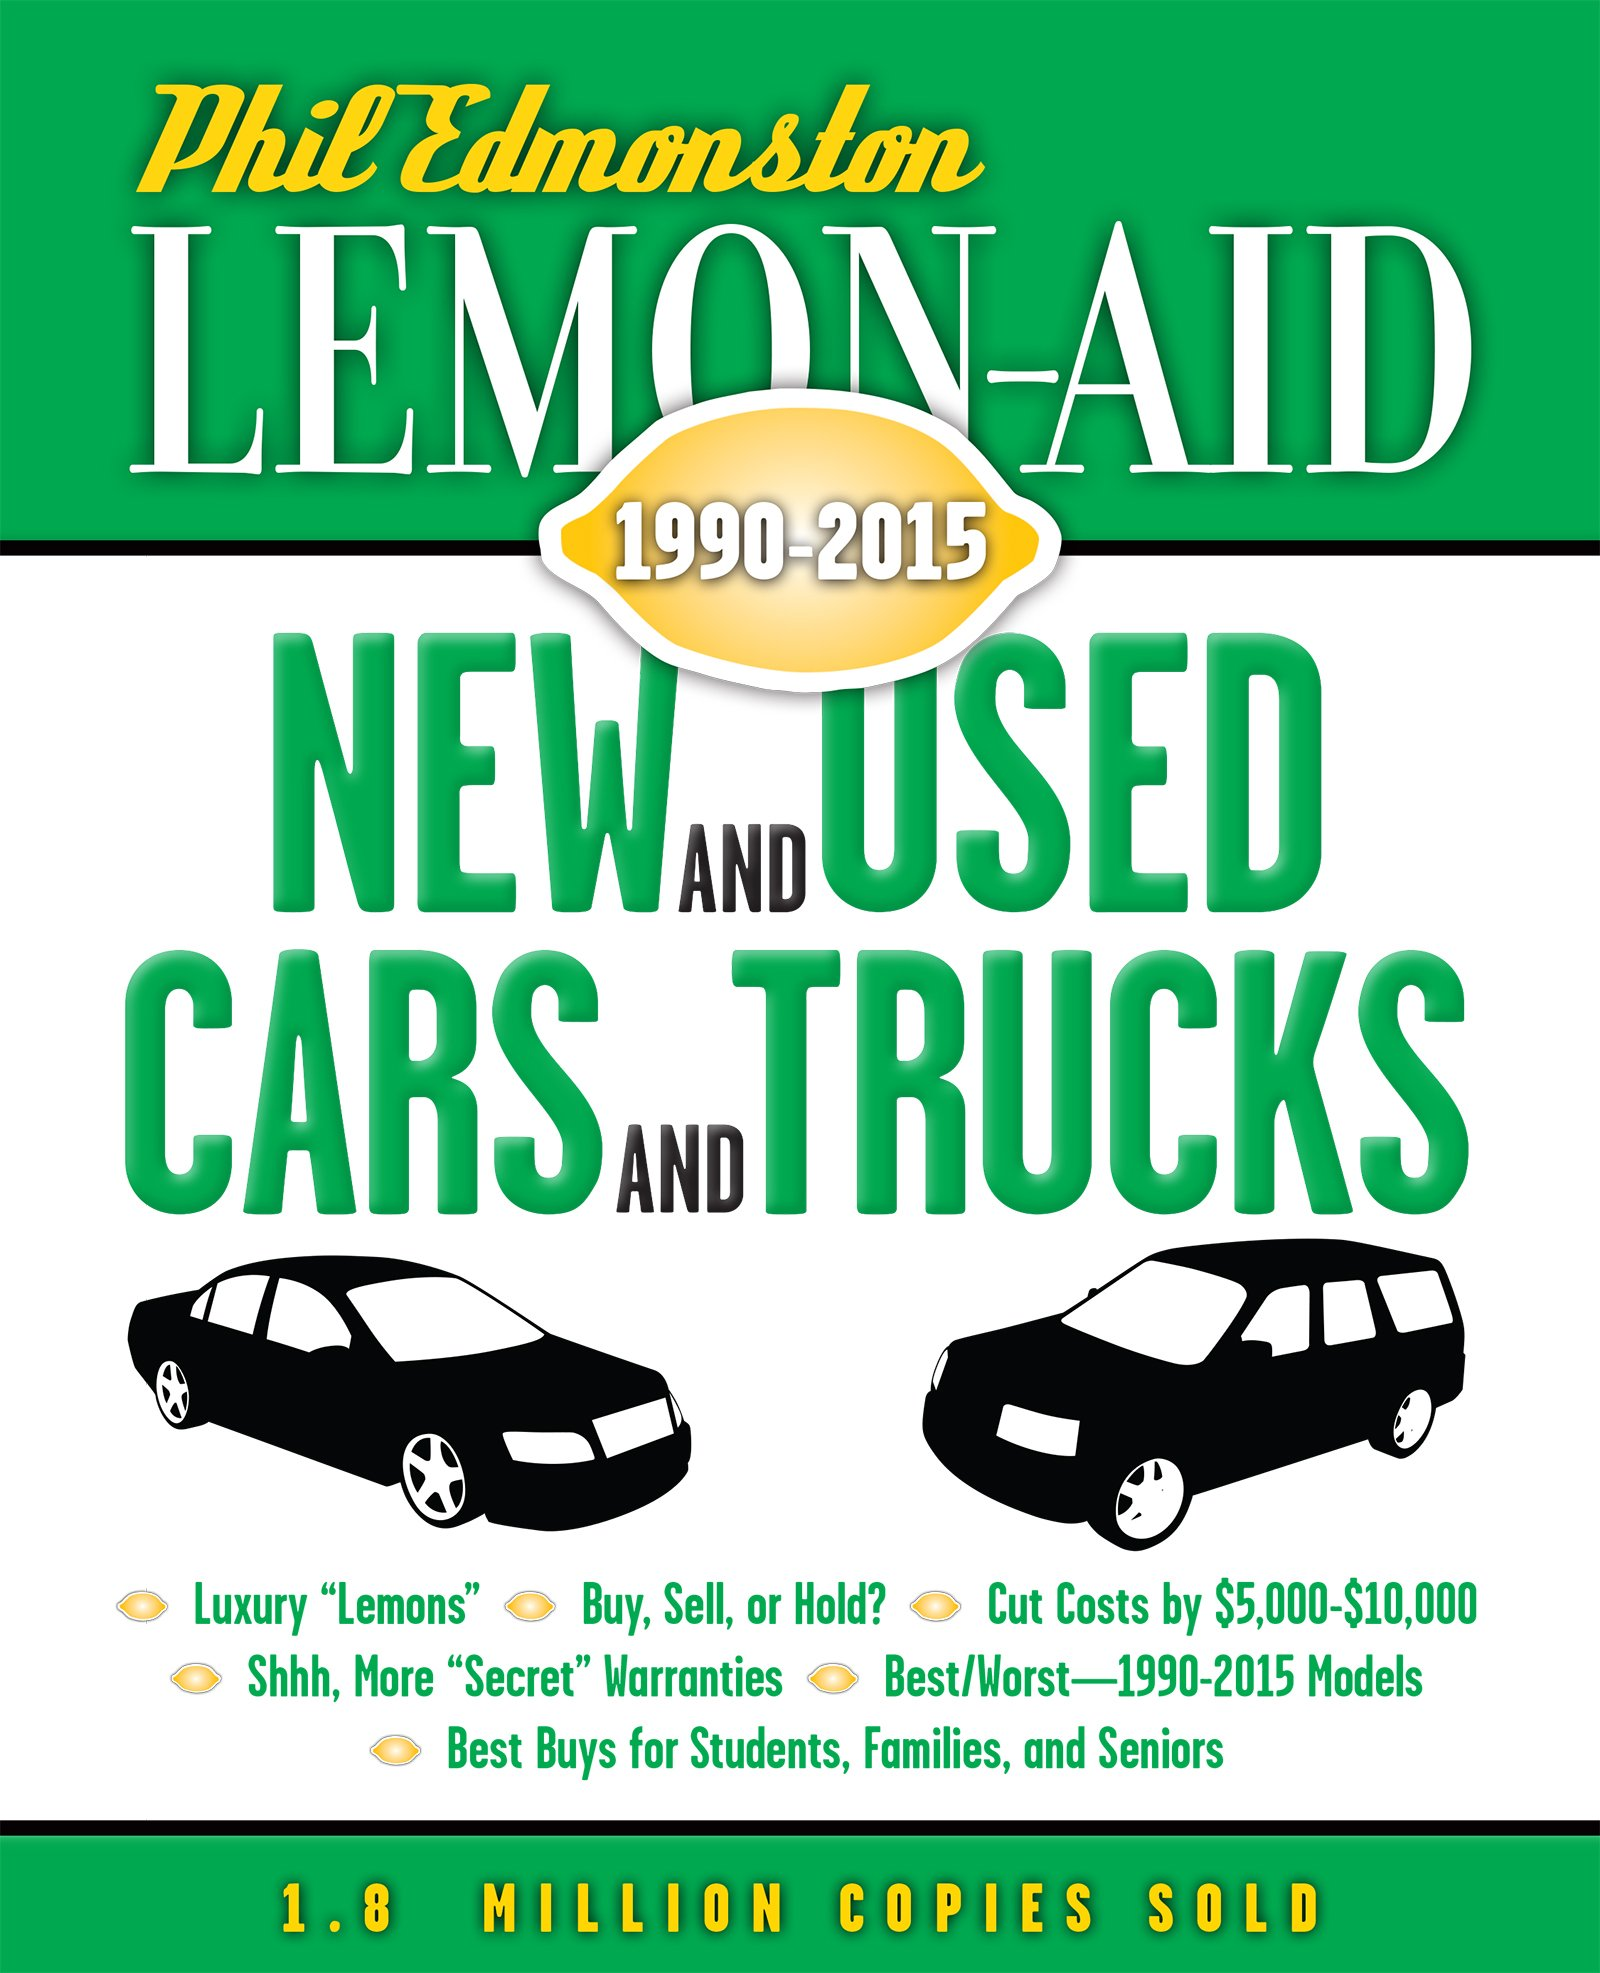 Lemon-Aid New and Used Cars and Trucks 1990-2015: Phil Edmonston ...